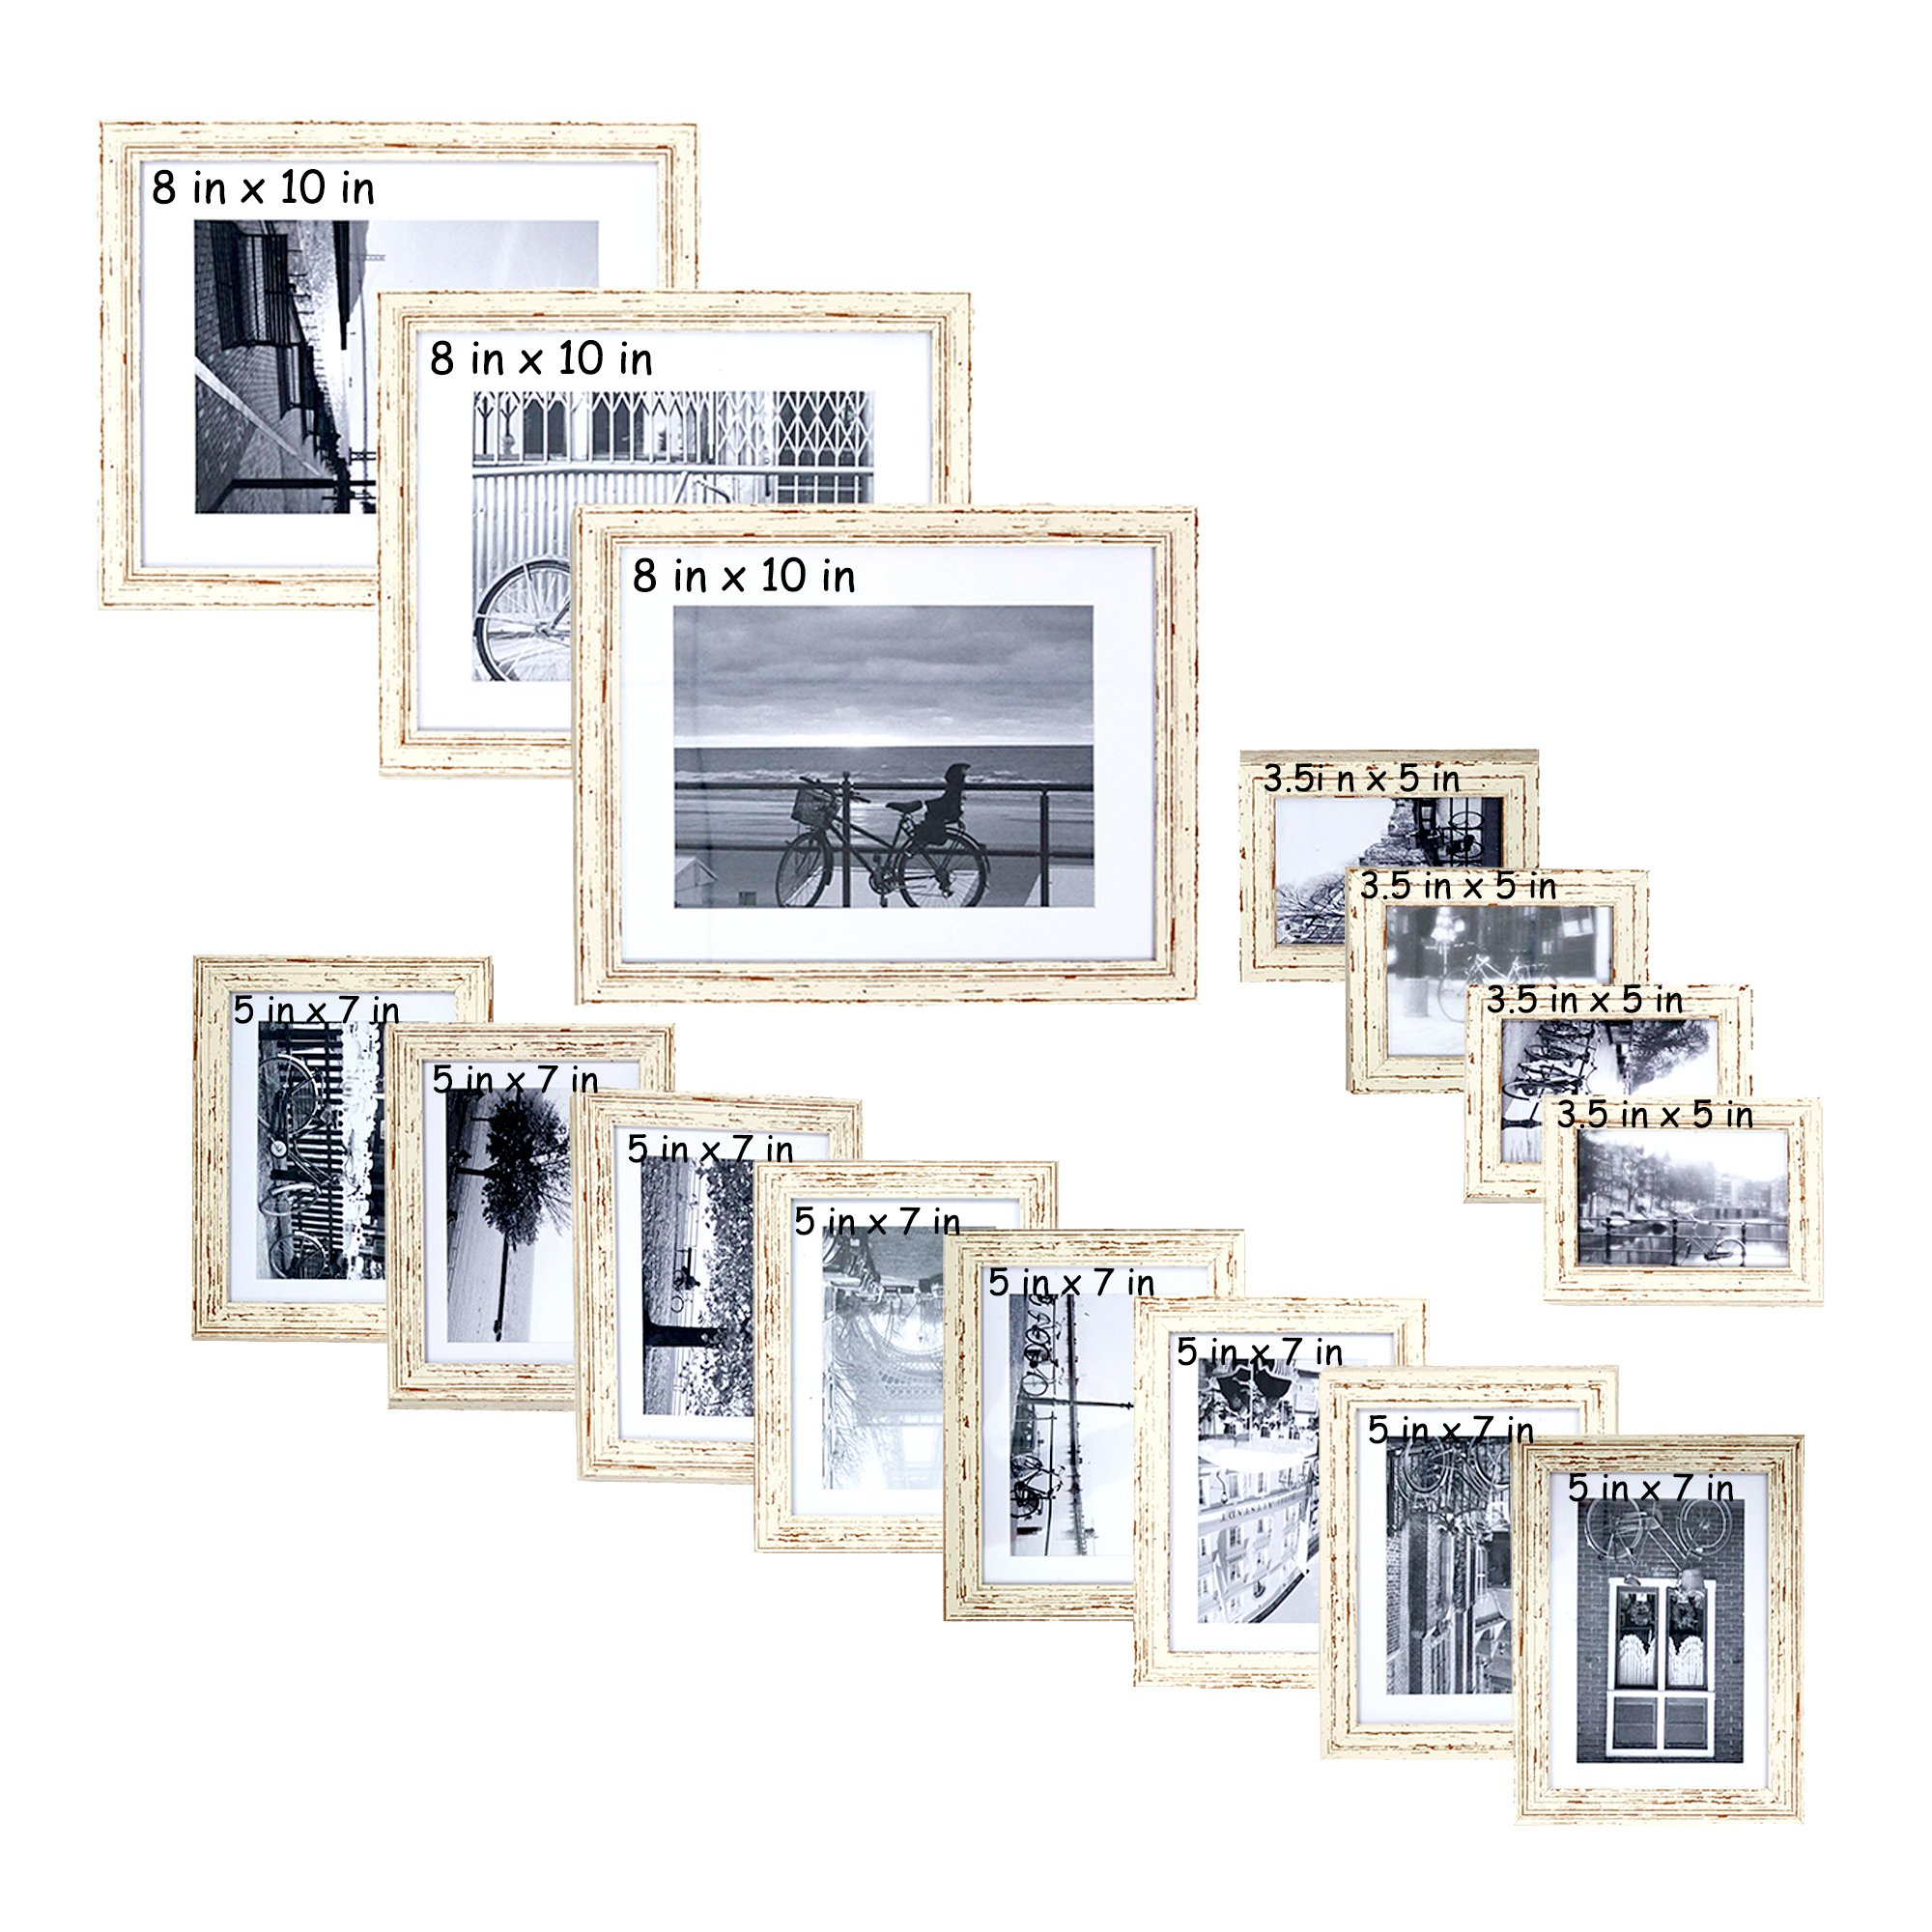 Lucky Tree Multi Pack Family Wall Photo Frame Sets of 15-3 pcs 8x10 in, 8 pcs 5x7 in, 4 pcs 3.5x5 in, White by Lucky Tree